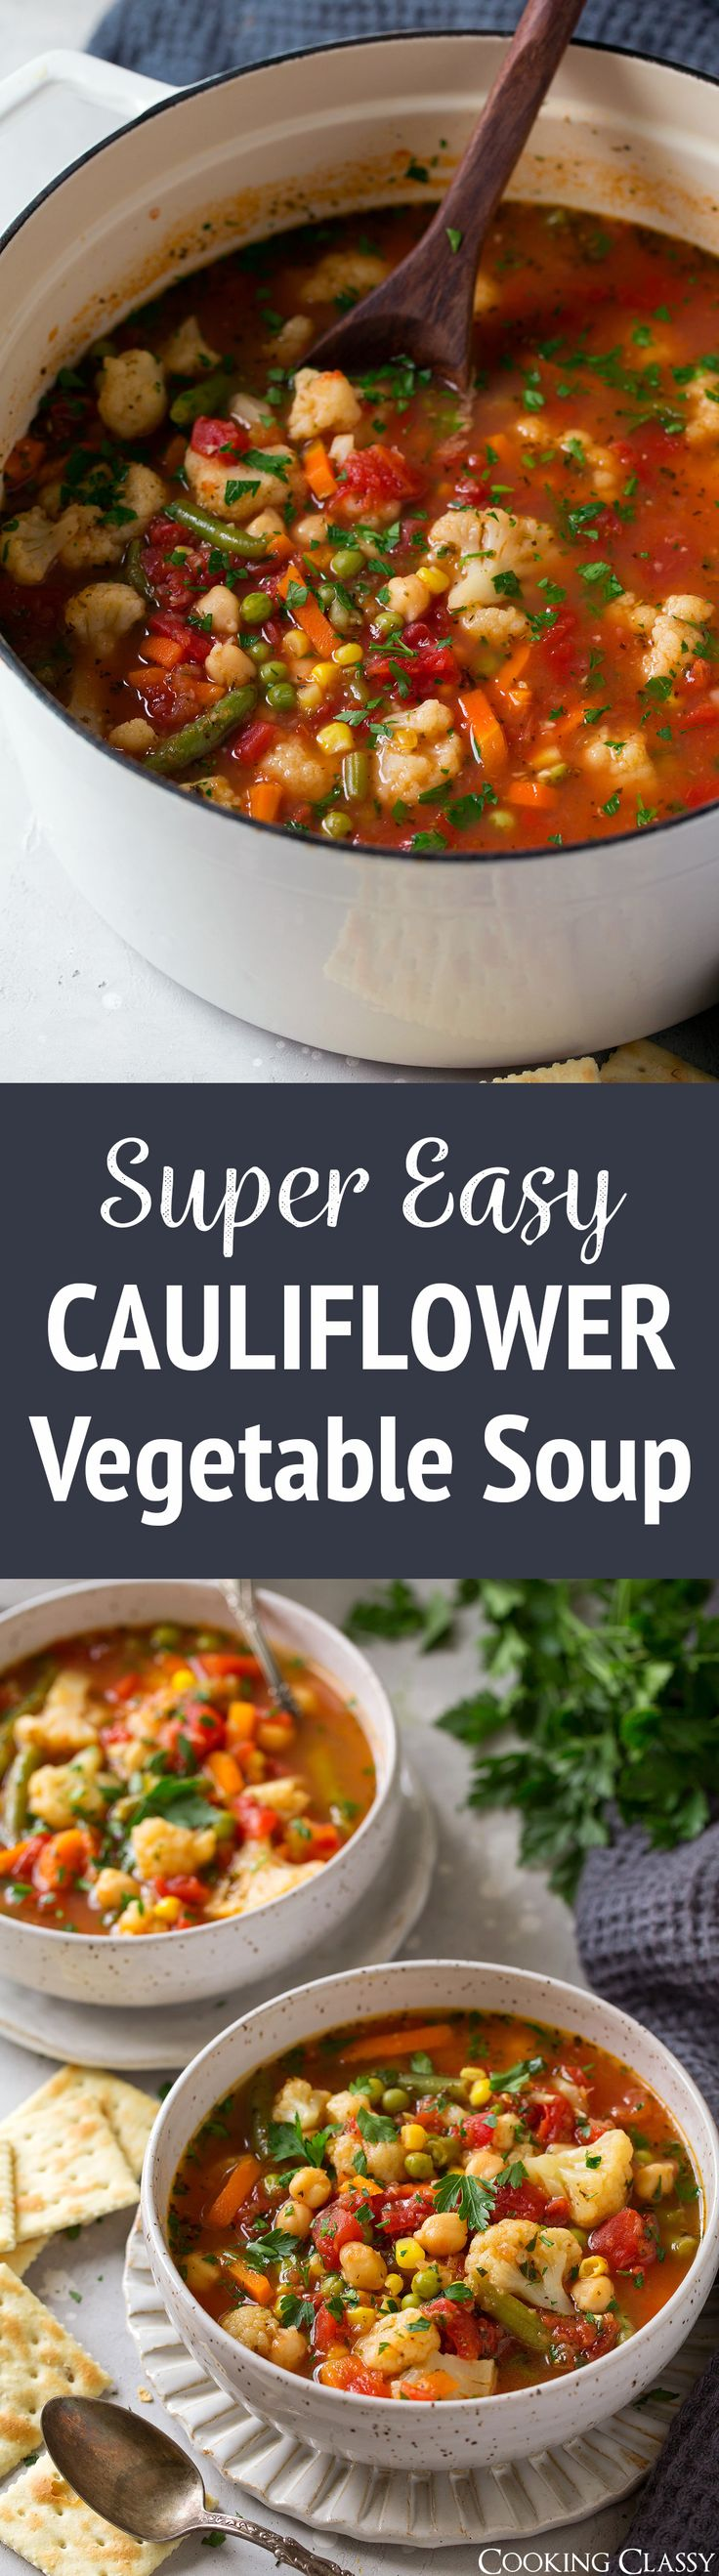 Super Easy Cauliflower Vegetable Soup - this vegetable soup is about as easy as it gets! Most of the veggies are pre-cut so the tedious part is already done. Perfect for busy days and those dreadful sick days. It also makes great leftovers for lunch.  via @cookingclassy